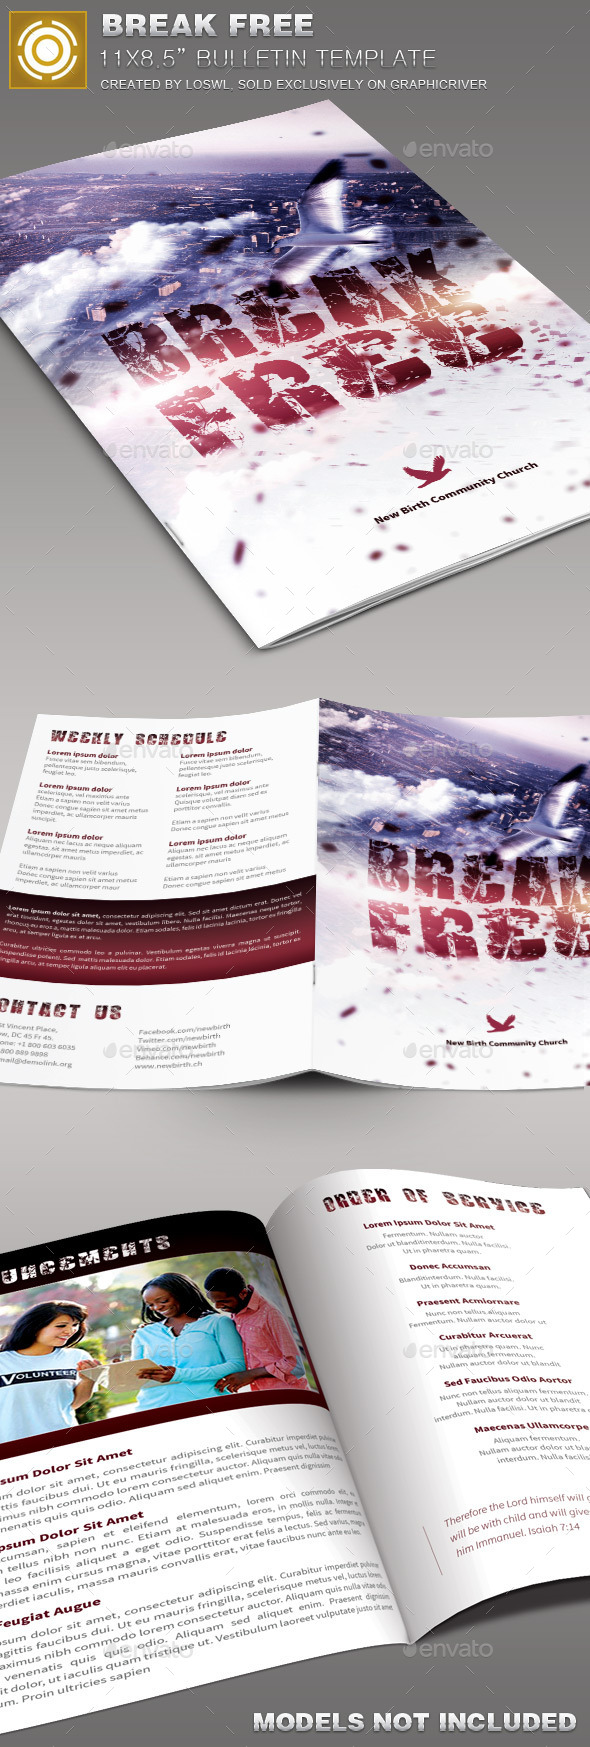 Break Free Church Bulletin Template - Informational Brochures